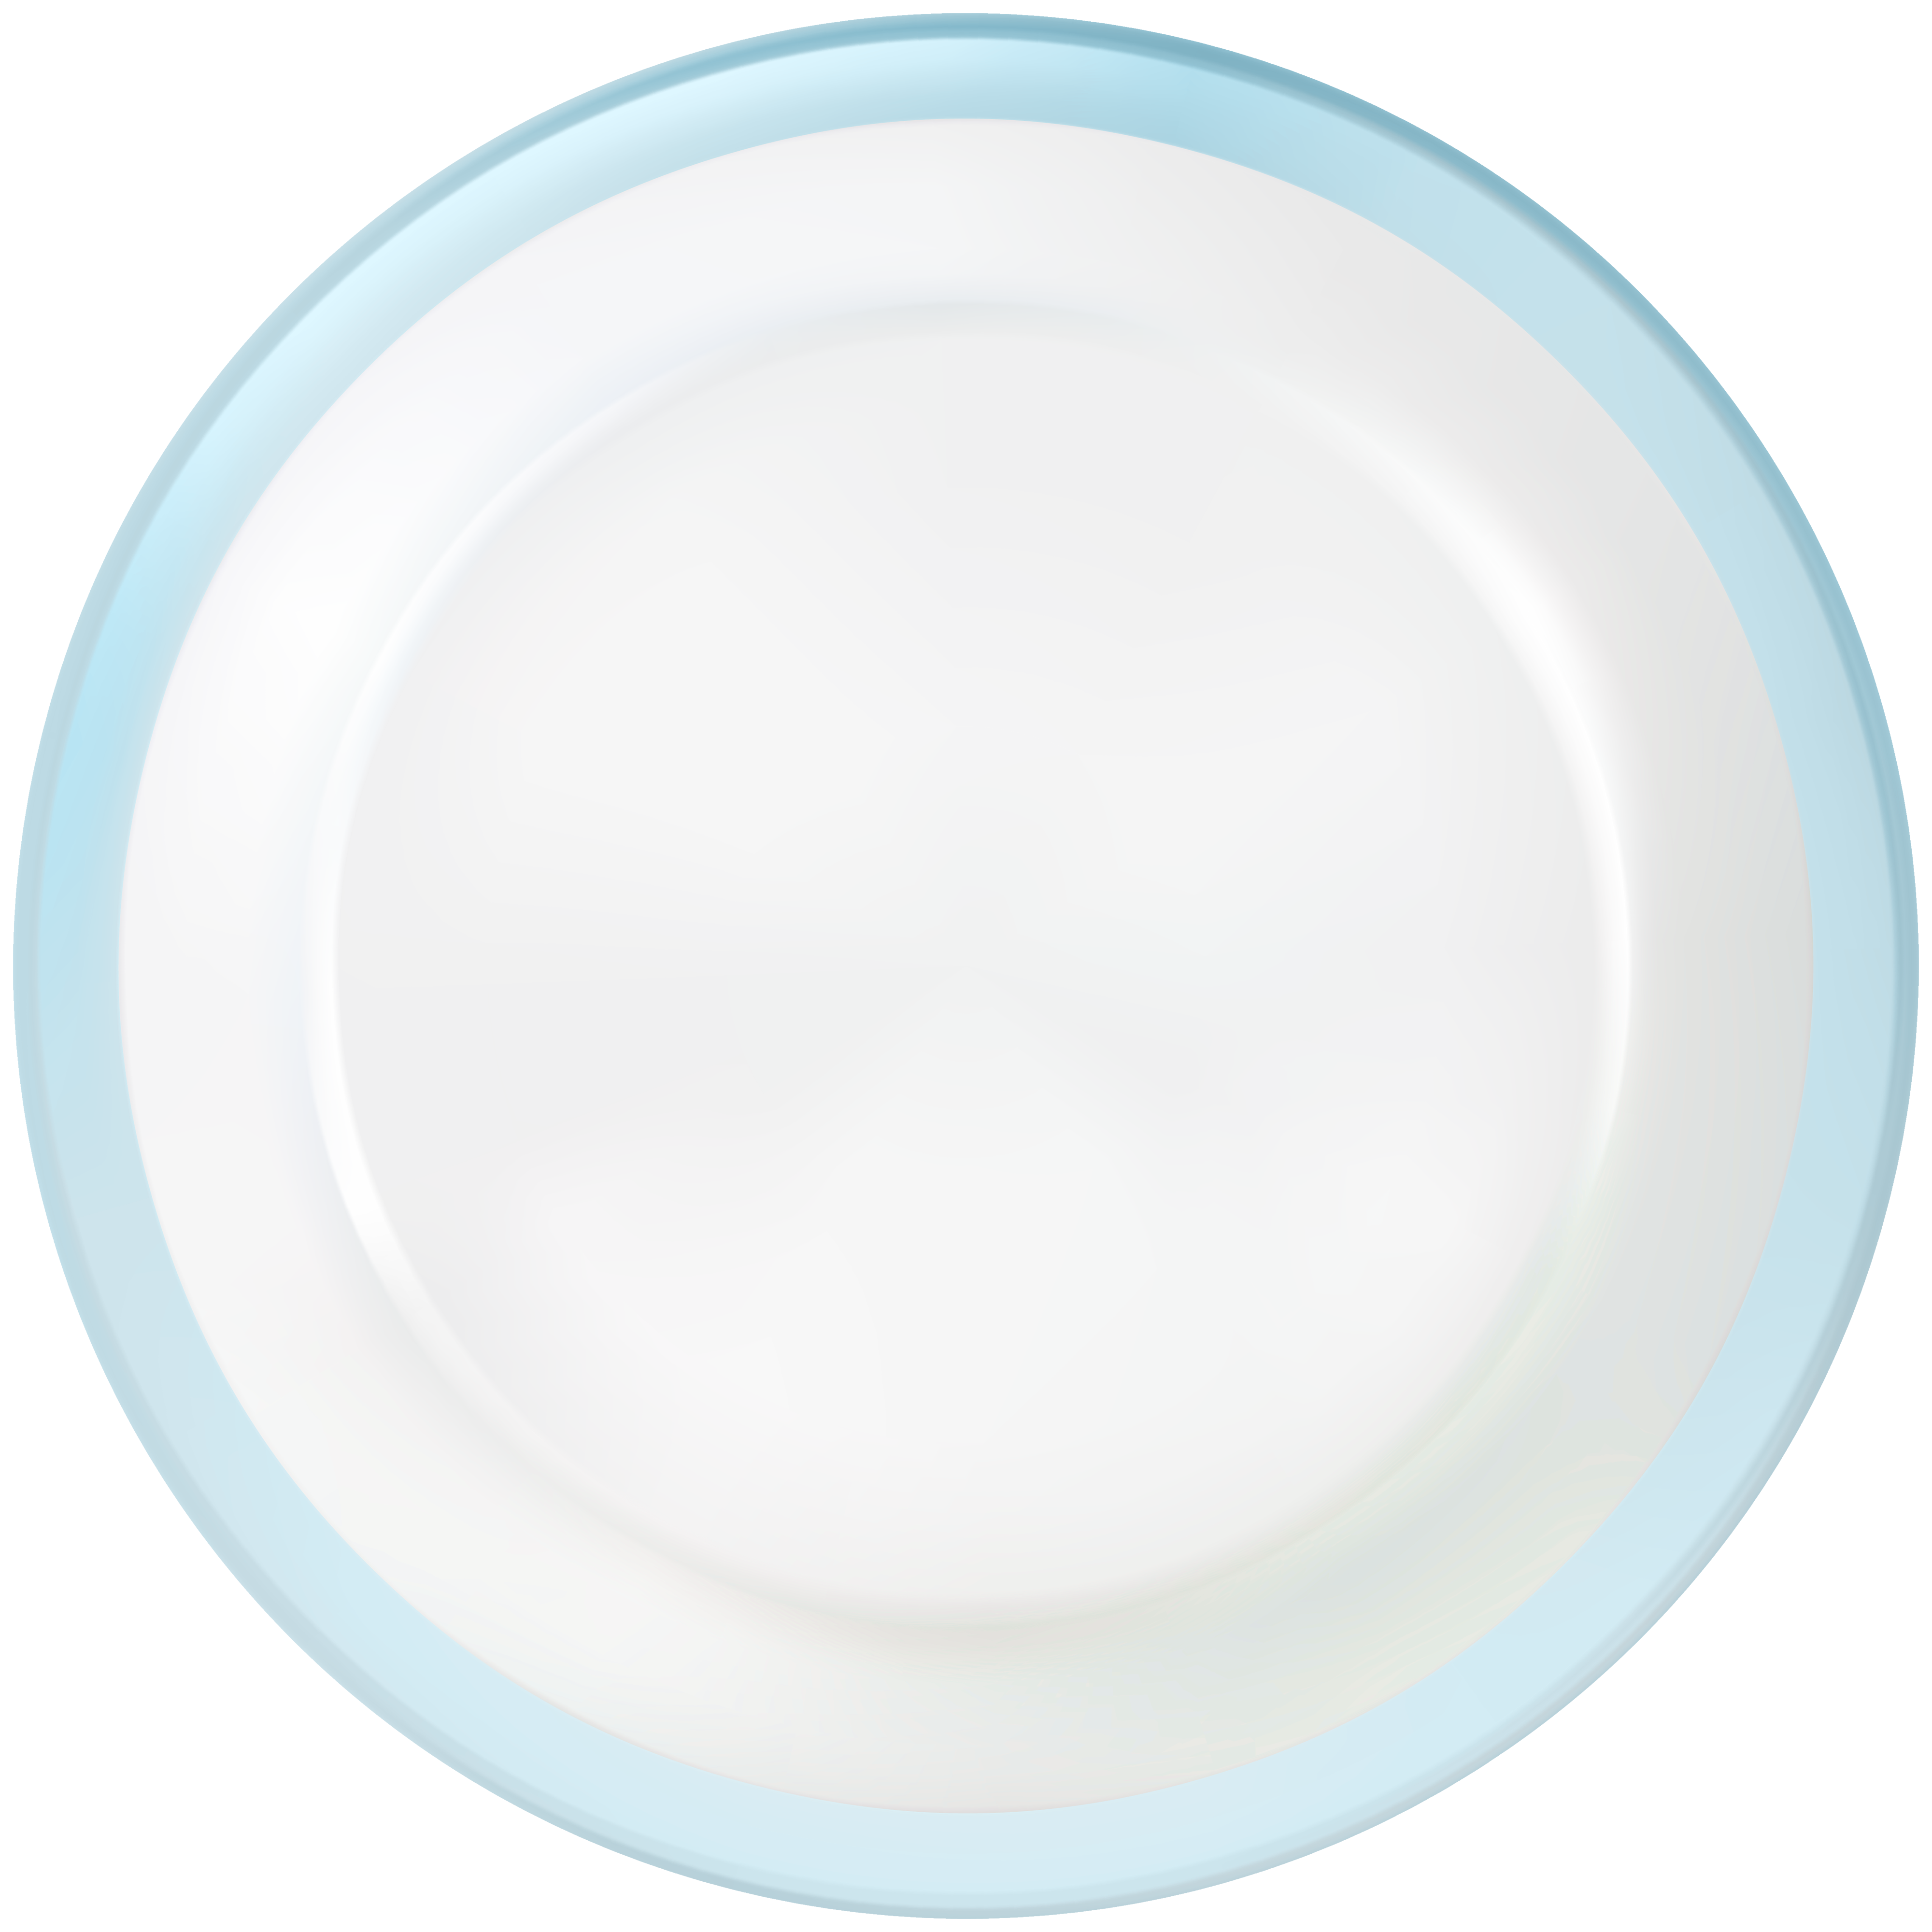 Plate clipart png. Best web